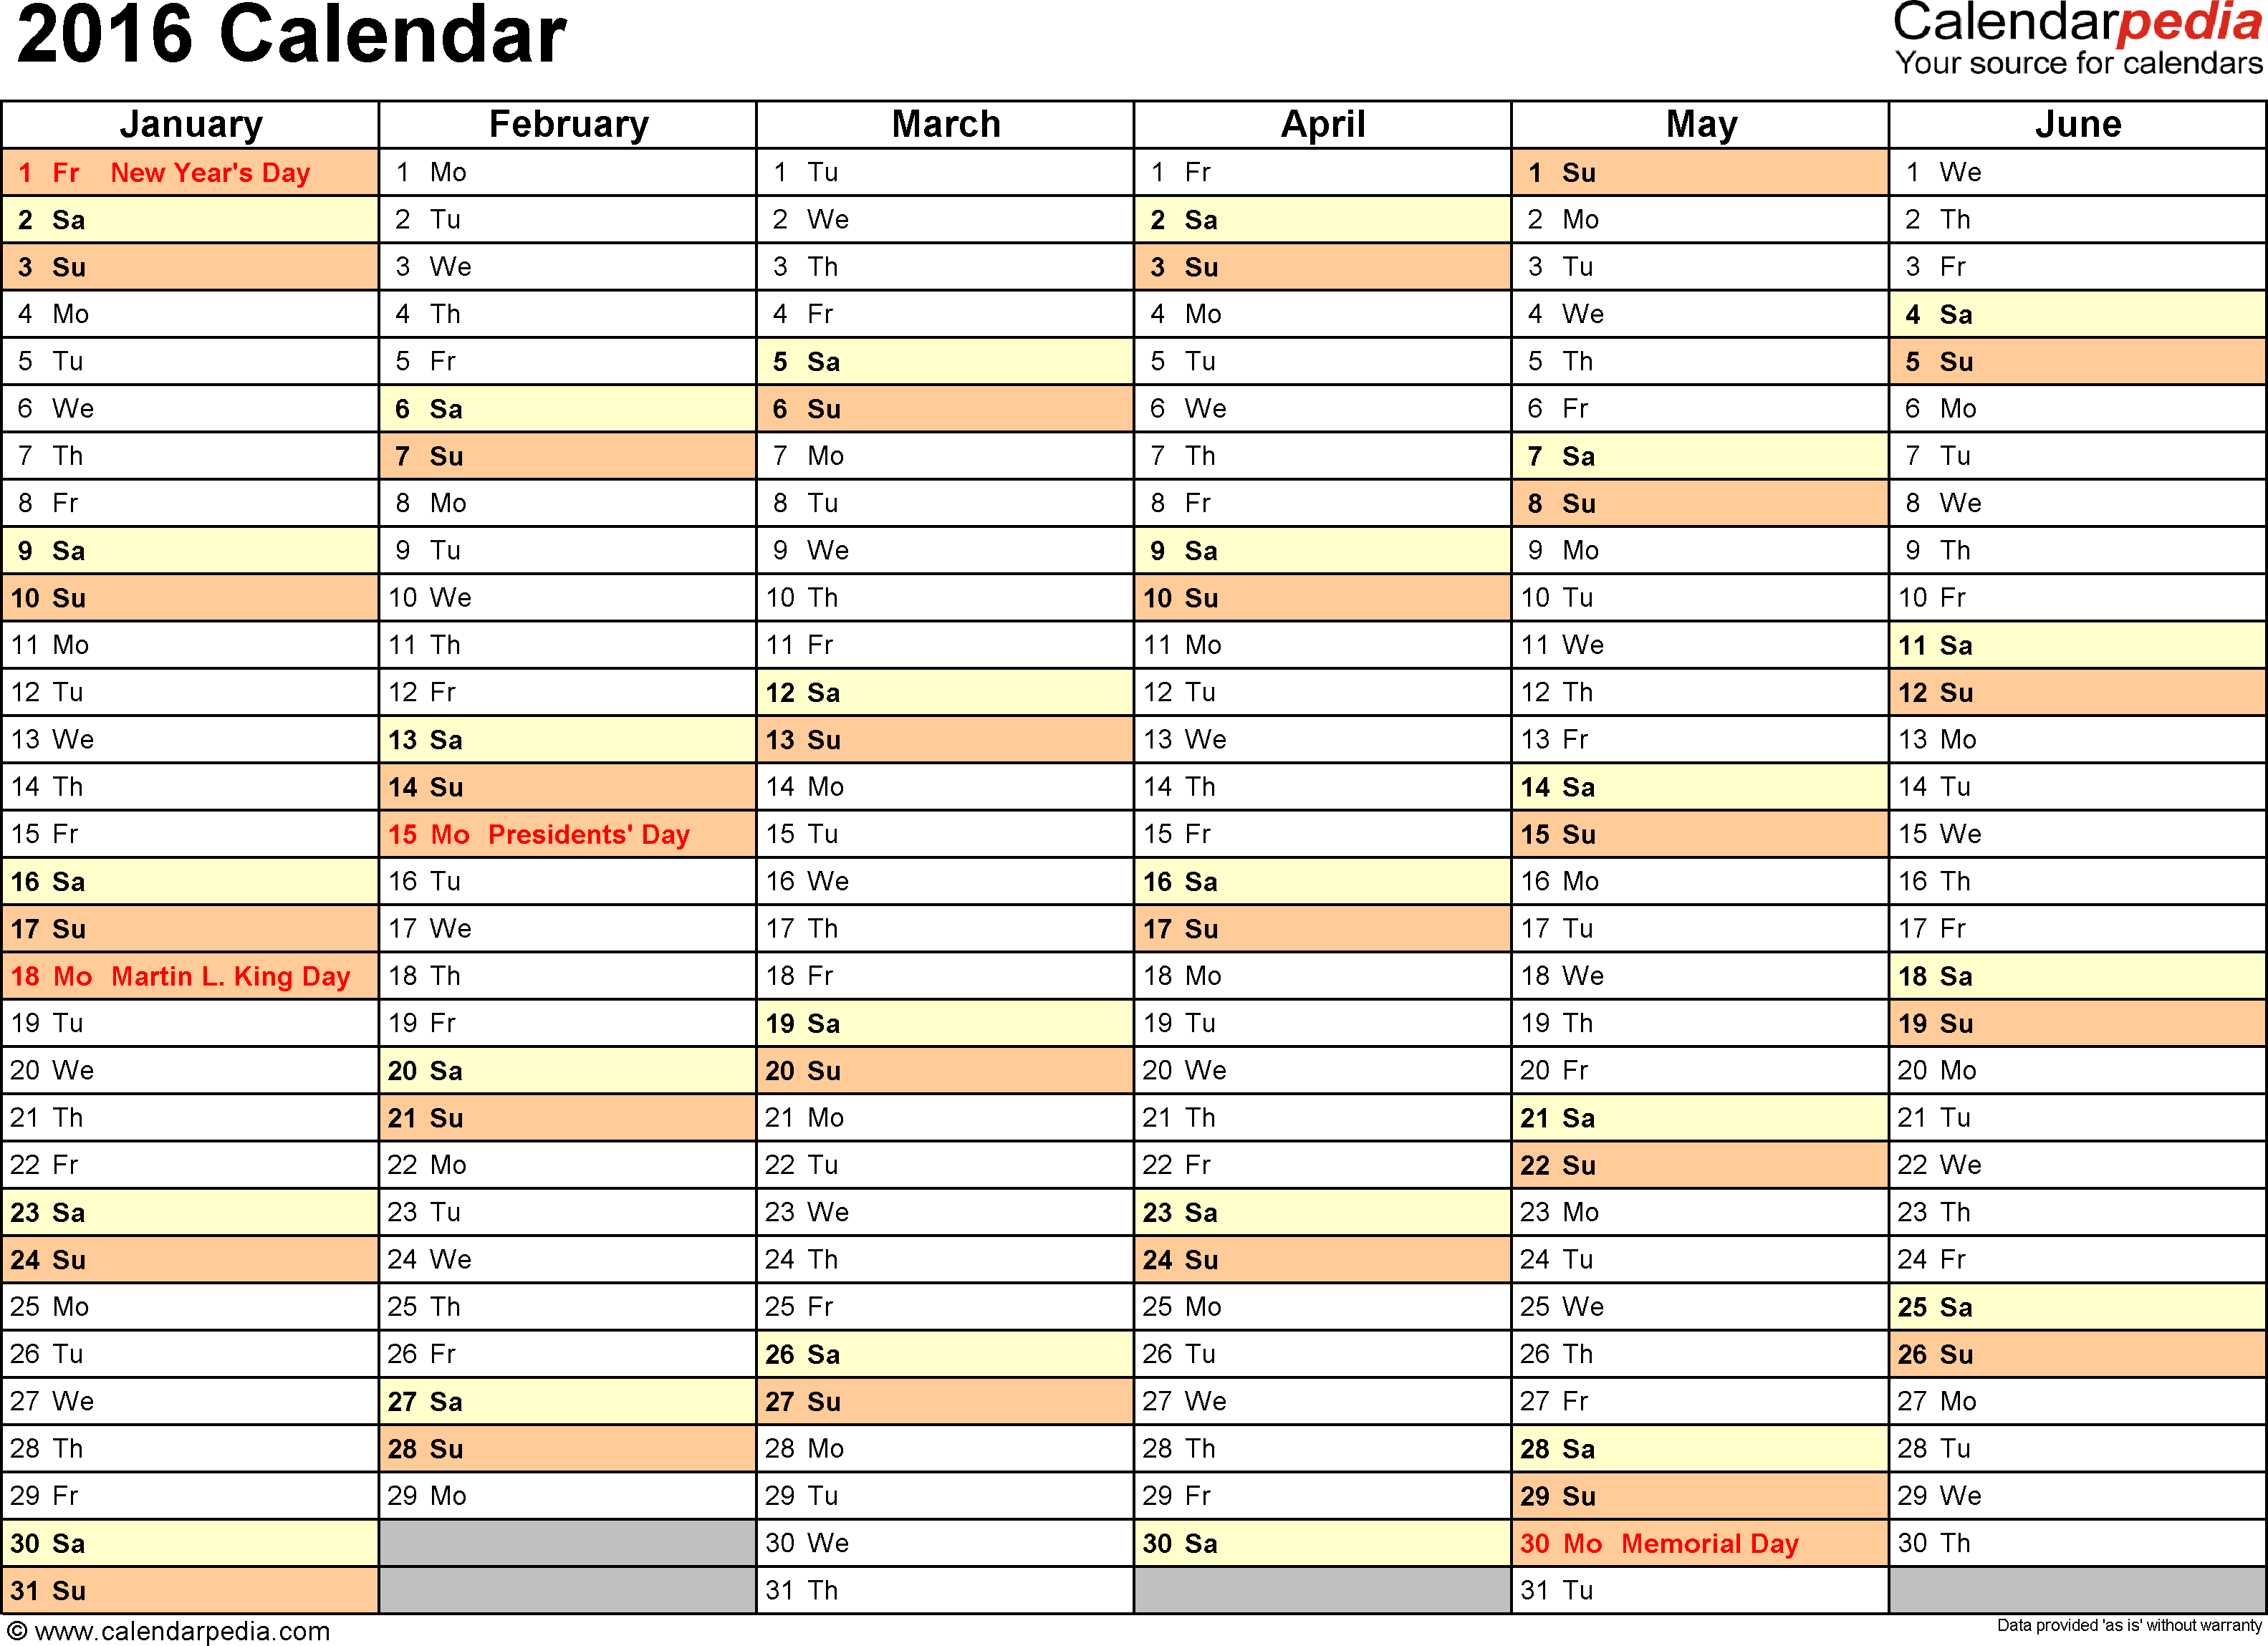 Ediblewildsus  Personable  Calendar  Download  Free Printable Excel Templates Xls With Luxury Template   Calendar For Excel Months Horizontally  Pages Landscape Orientation With Lovely Pay Stub Template Excel Also How To Add Multiple Columns In Excel In Addition Z Test Excel And Excel Phone Number As Well As Adding Secondary Axis In Excel Additionally Left Formula Excel From Calendarpediacom With Ediblewildsus  Luxury  Calendar  Download  Free Printable Excel Templates Xls With Lovely Template   Calendar For Excel Months Horizontally  Pages Landscape Orientation And Personable Pay Stub Template Excel Also How To Add Multiple Columns In Excel In Addition Z Test Excel From Calendarpediacom